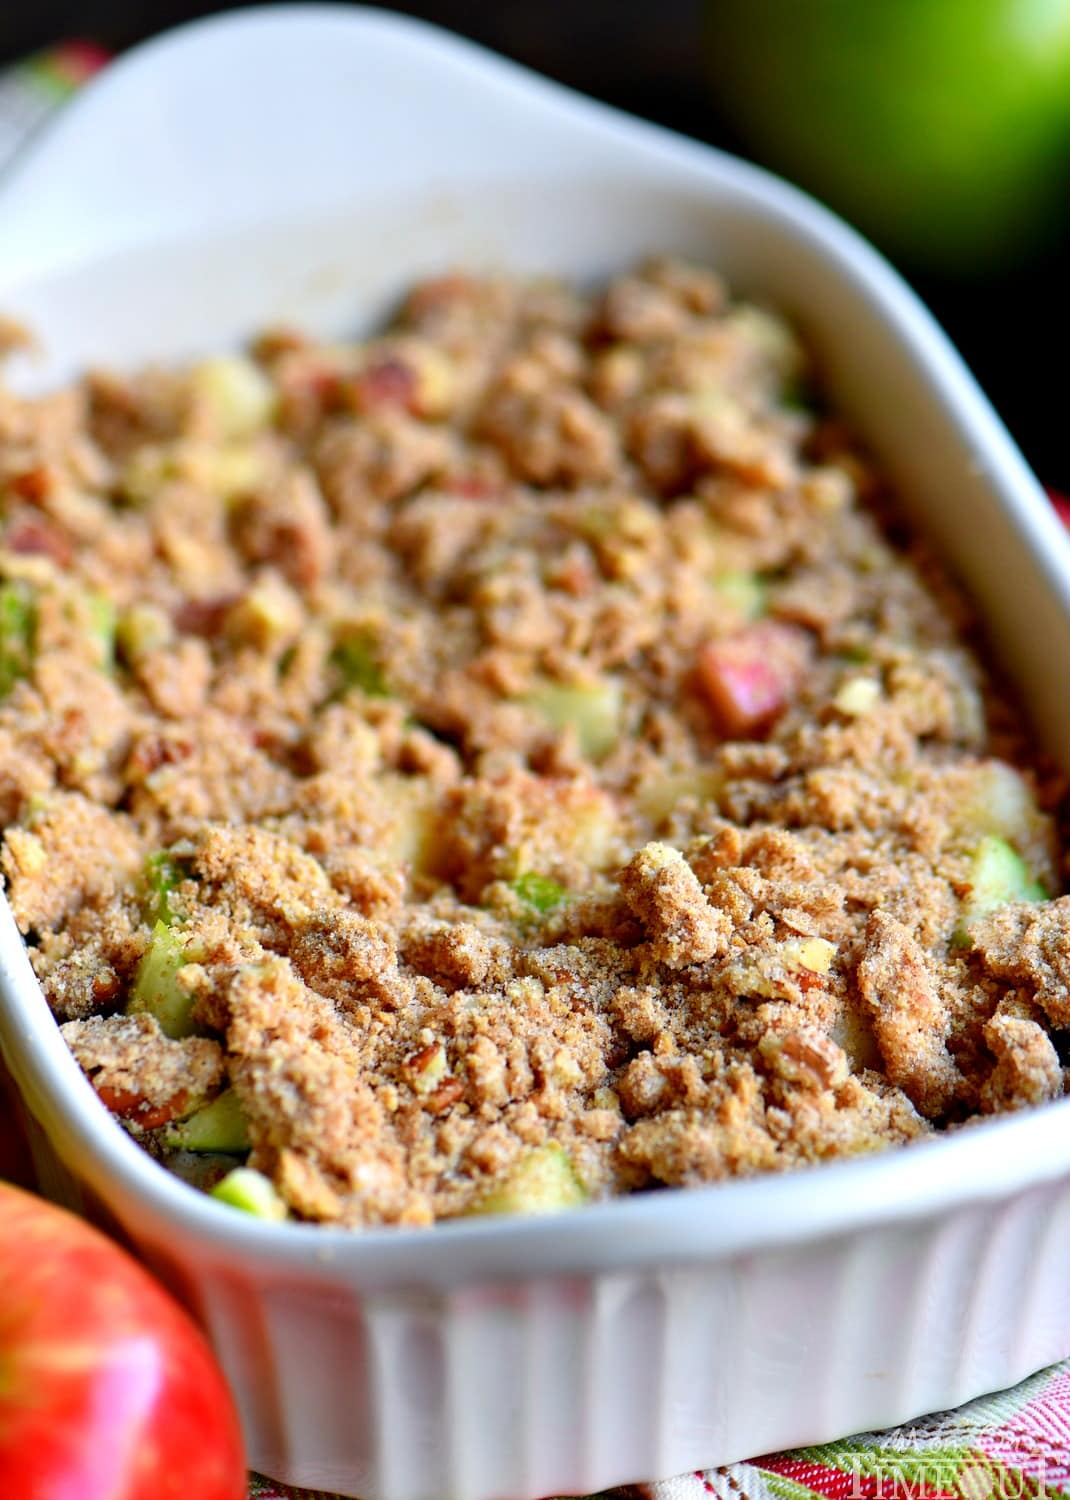 streusel topping on apple dip